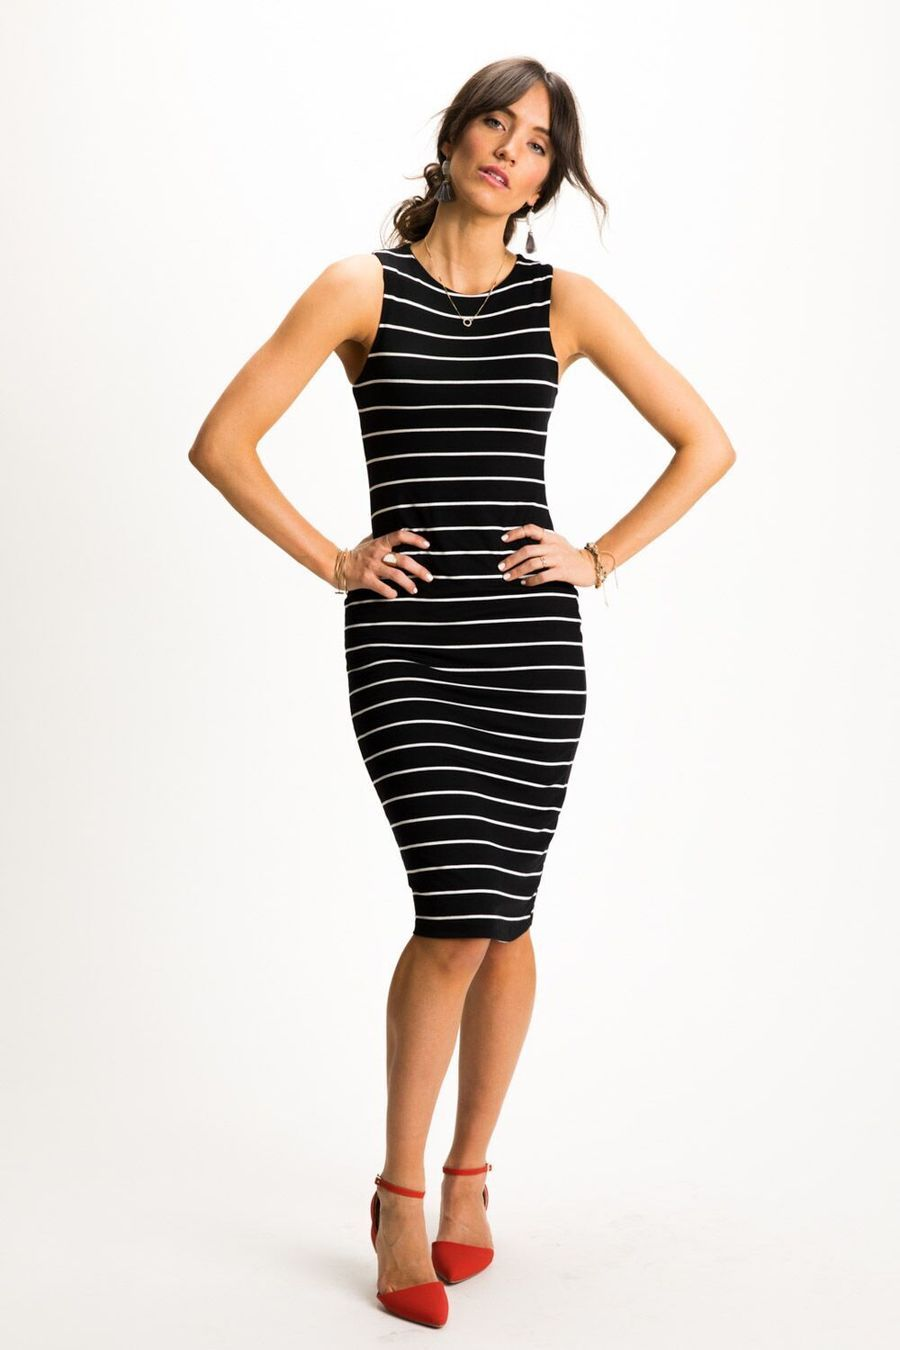 Buy How to tight wear midi dress picture trends